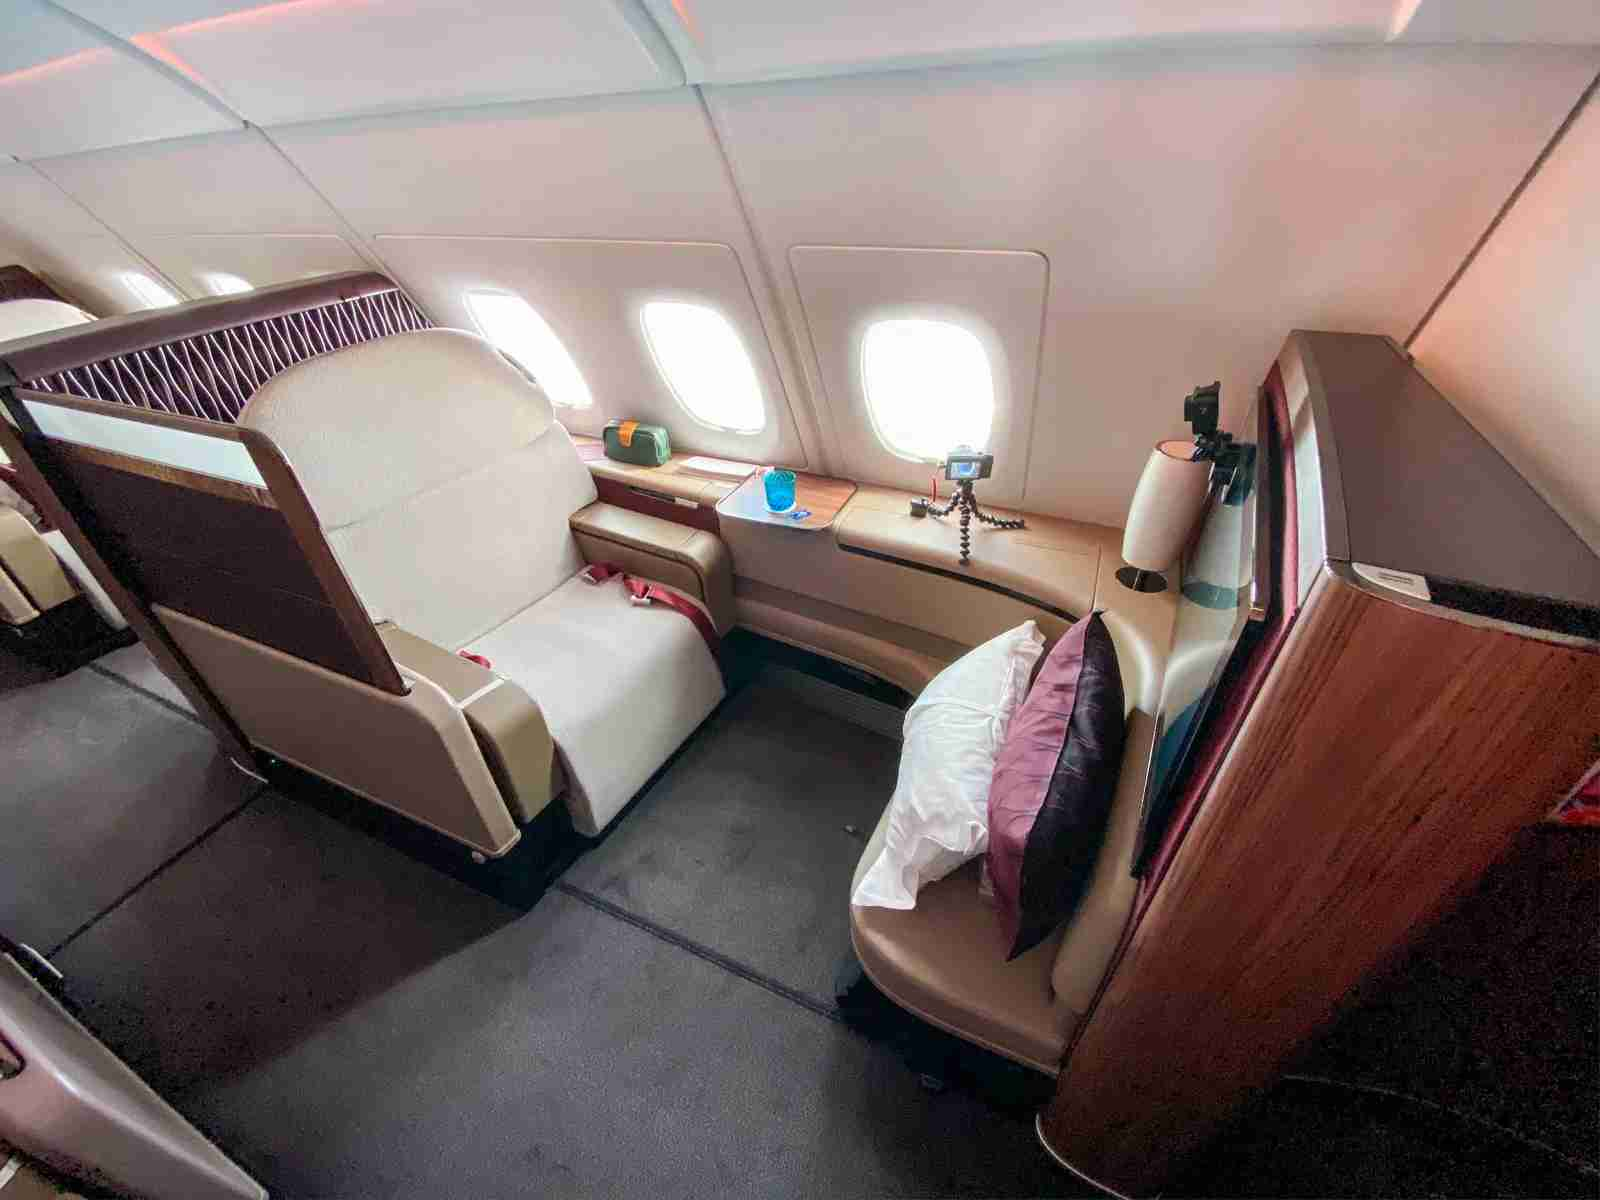 Qatar first class (Photo by Liam Spencer/The Points Guy)